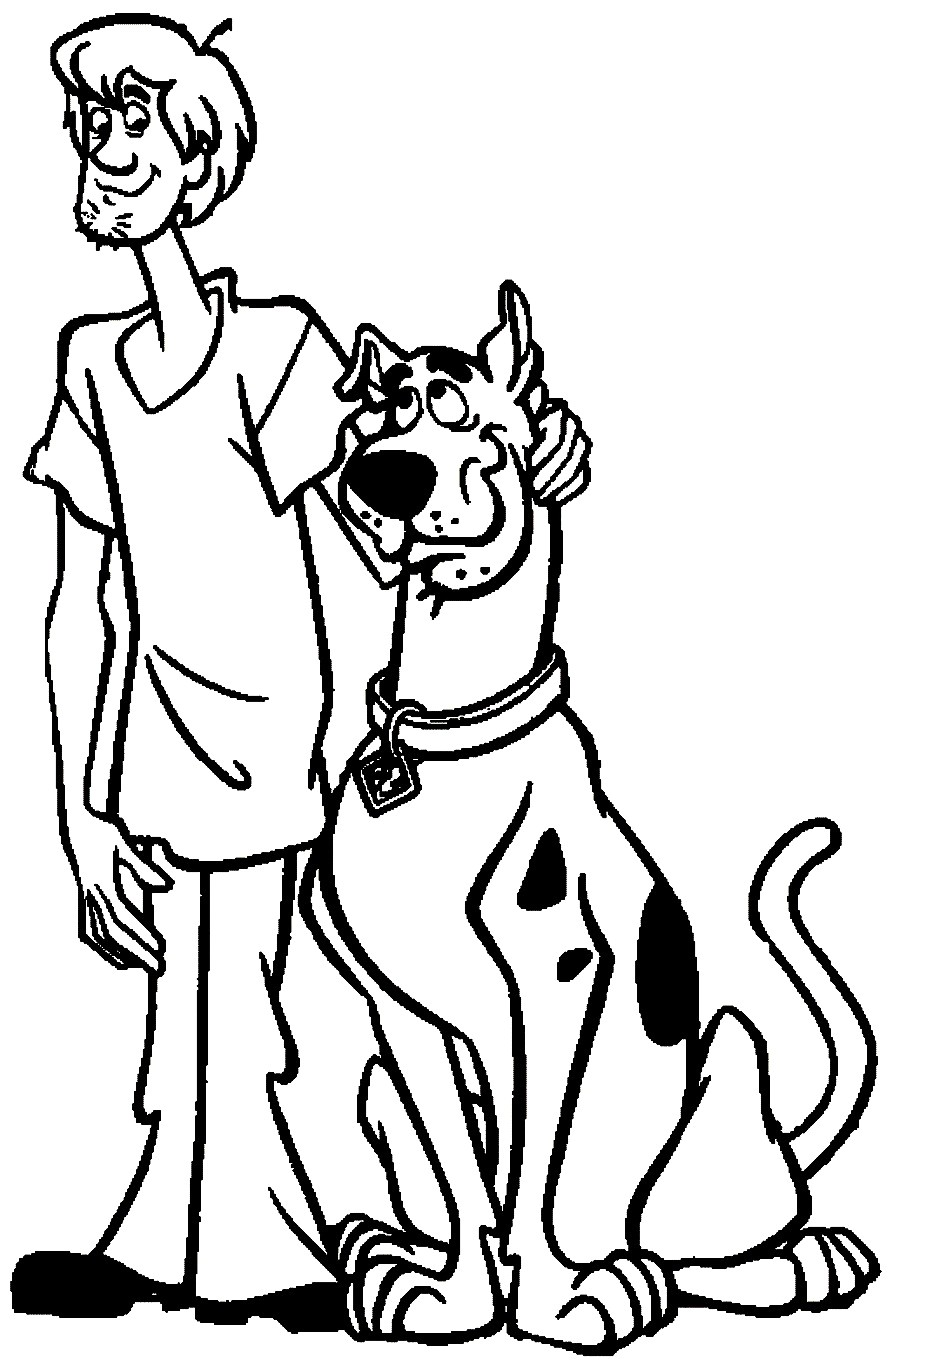 Scooby Doo Face Drawing | Free download on ClipArtMag